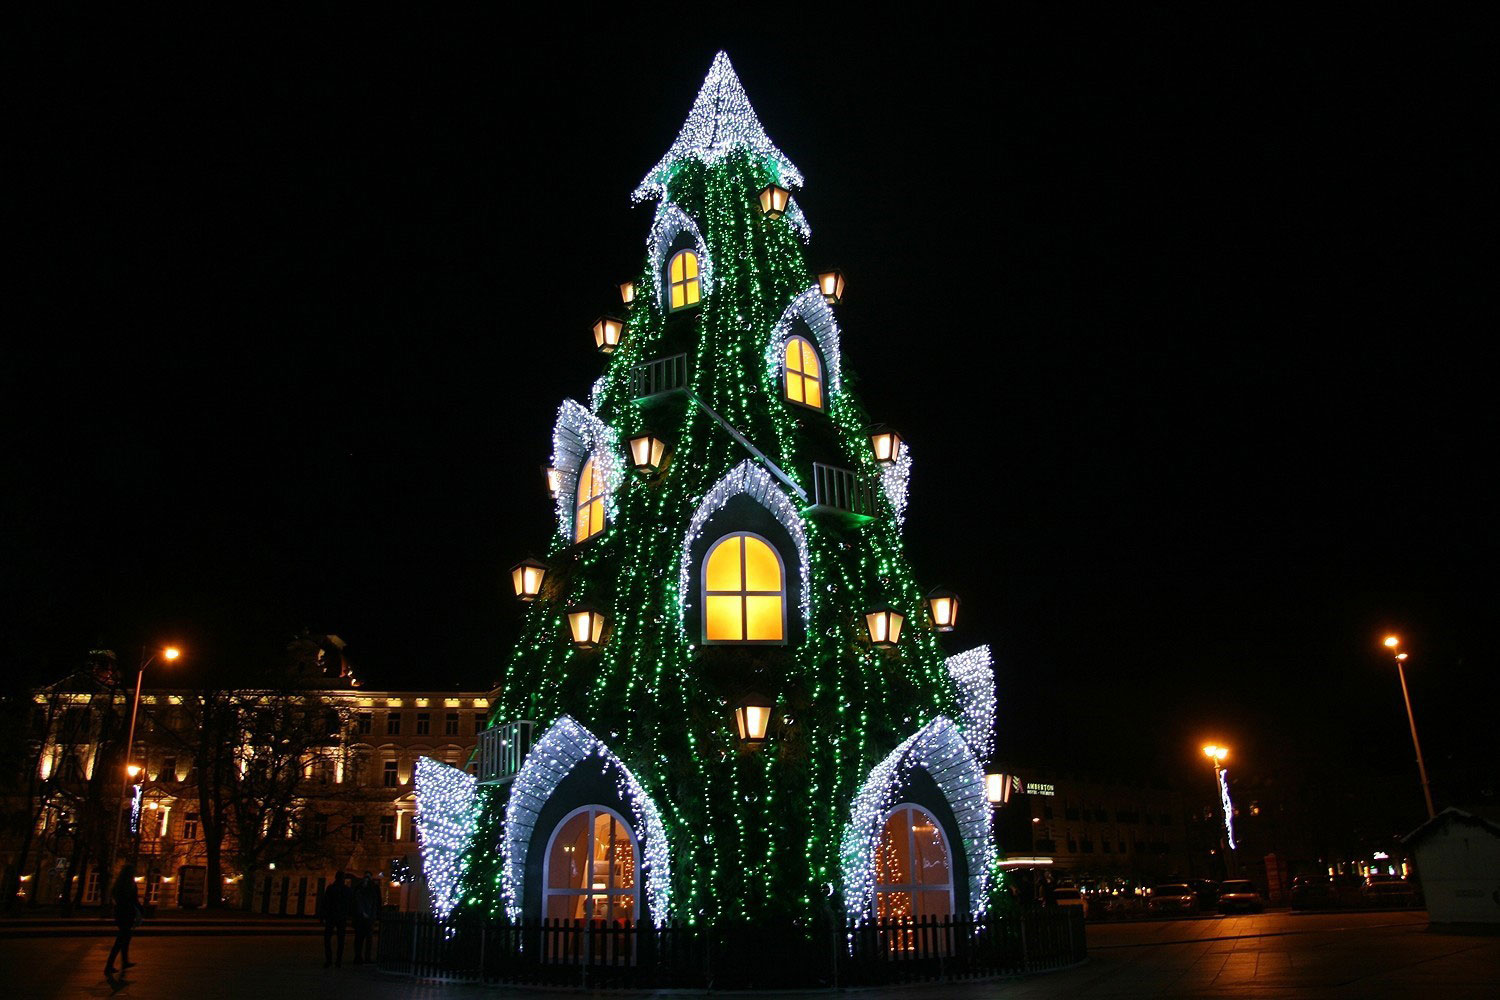 「lithuania christmas tree」の画像検索結果